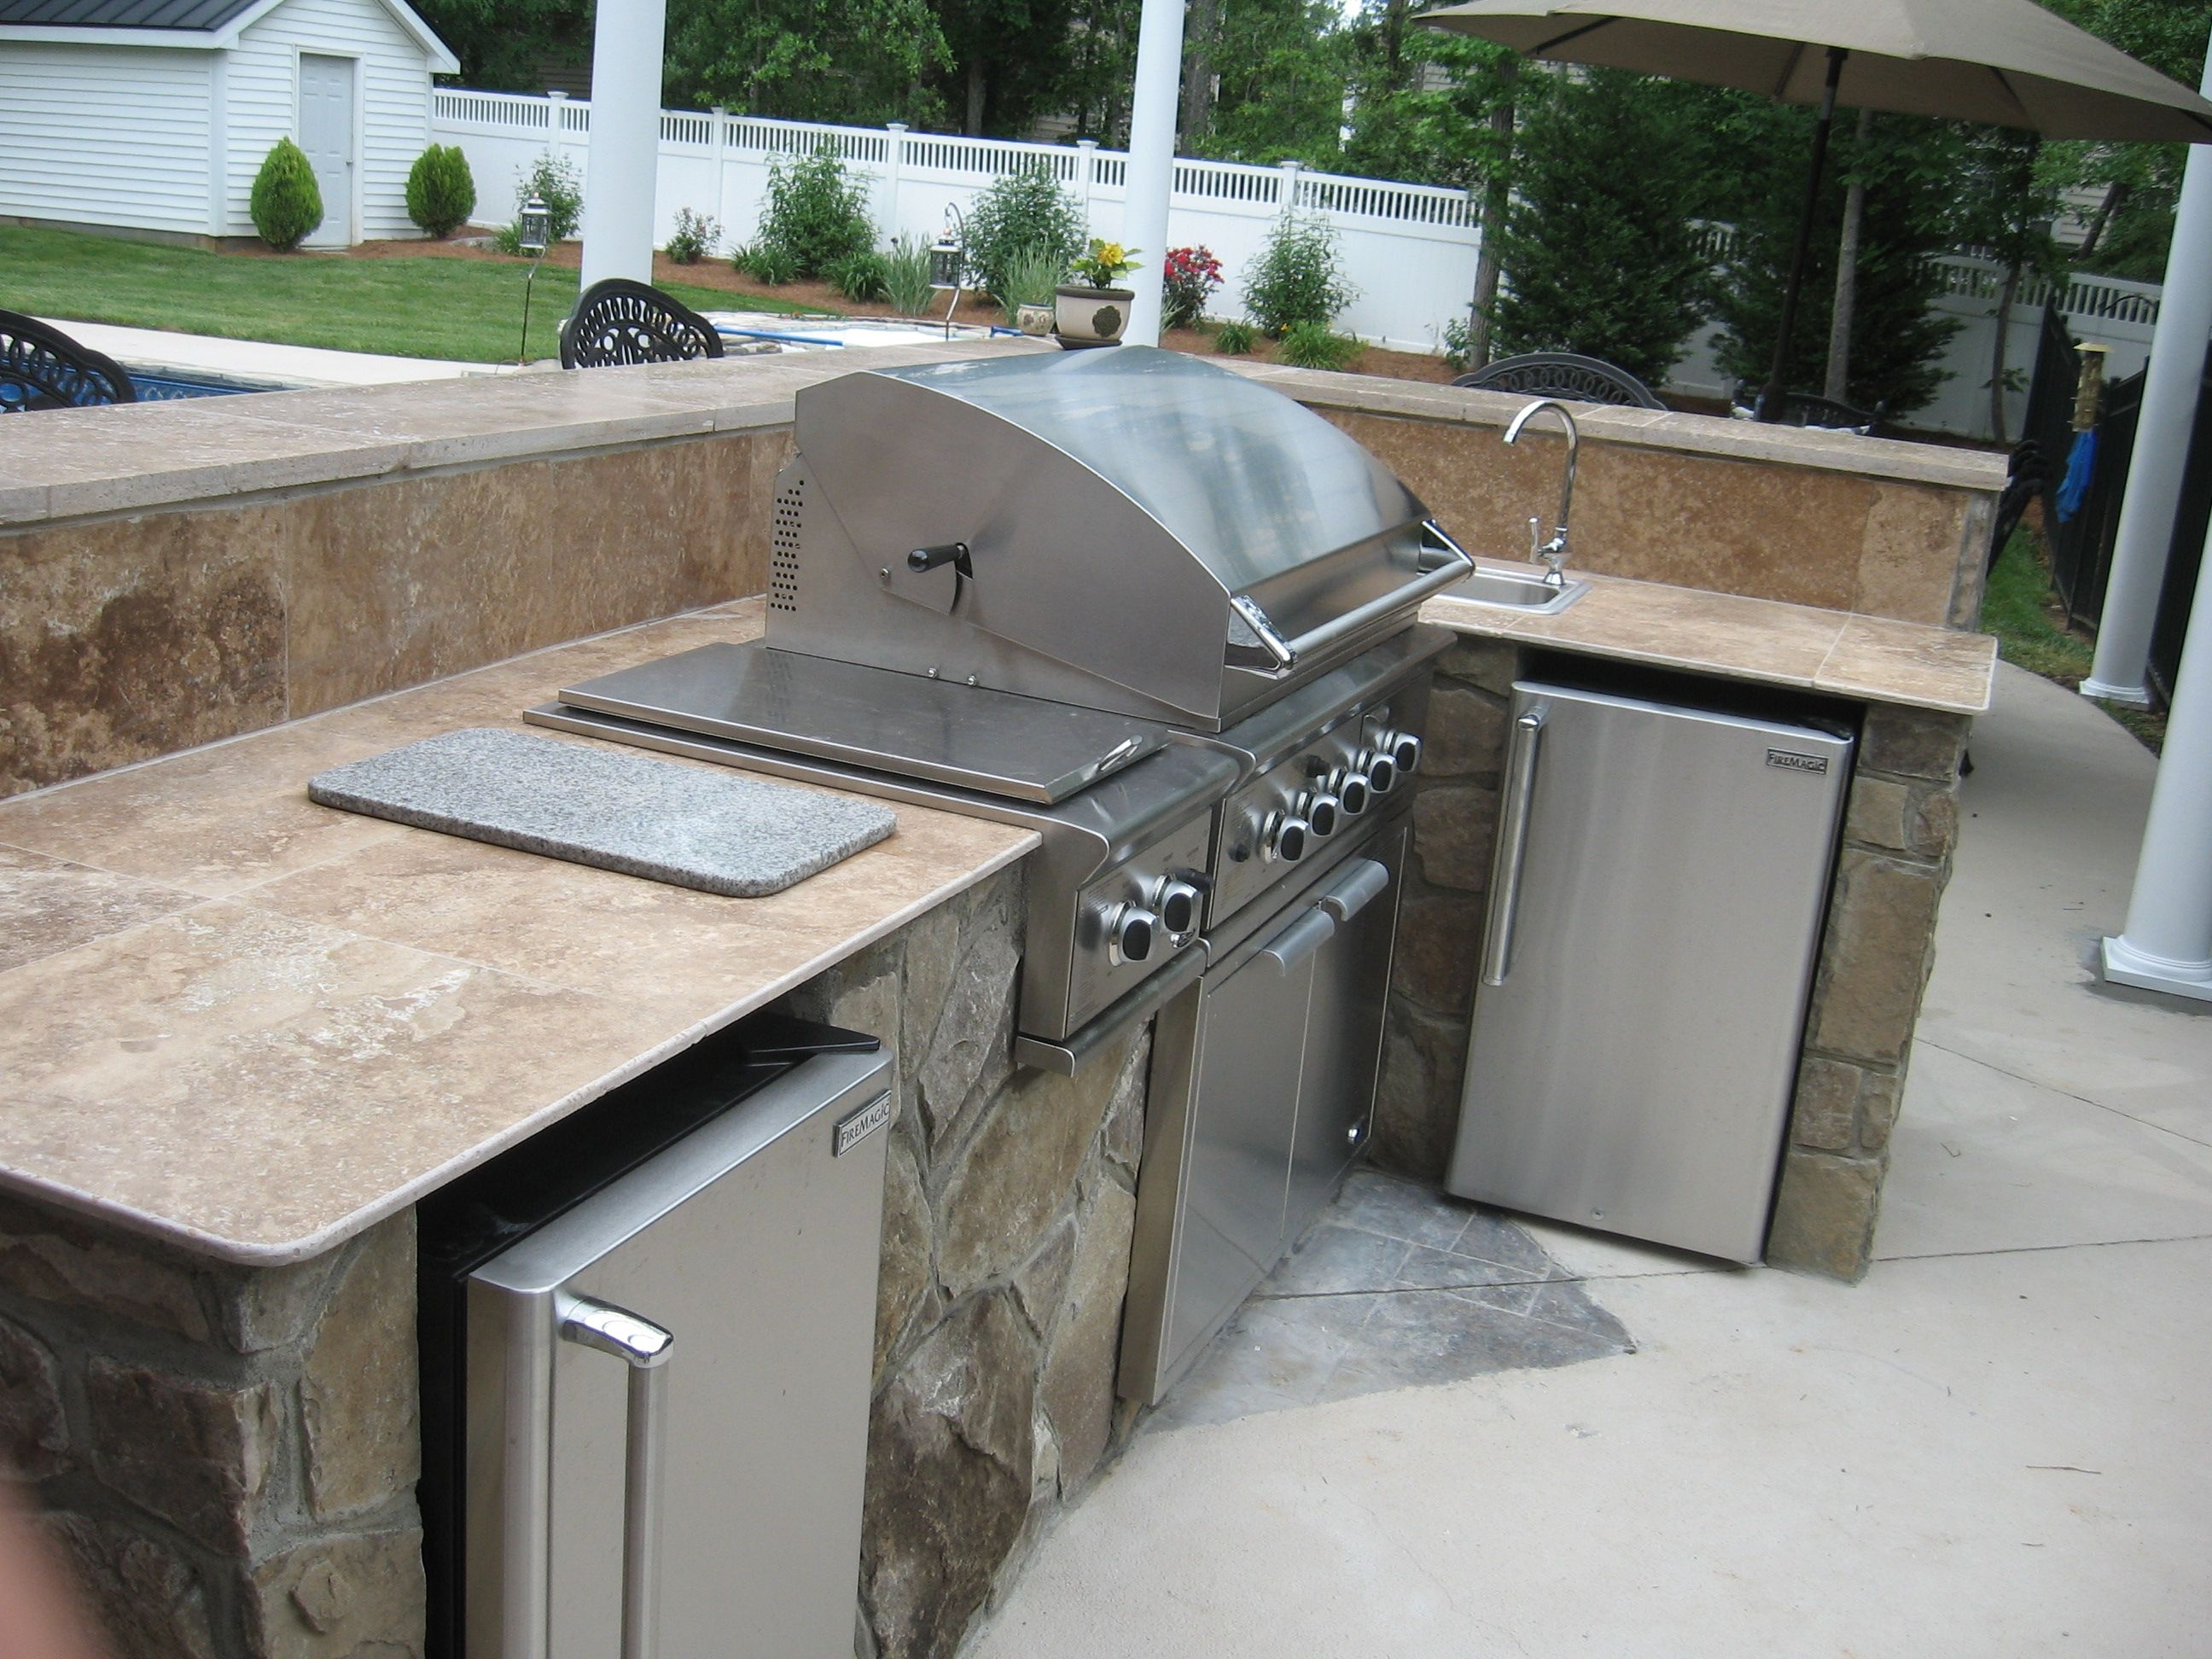 Tile For Outdoor Kitchen Countertop  Httpnavigatorspb Beauteous Outdoor Kitchen Countertops Inspiration